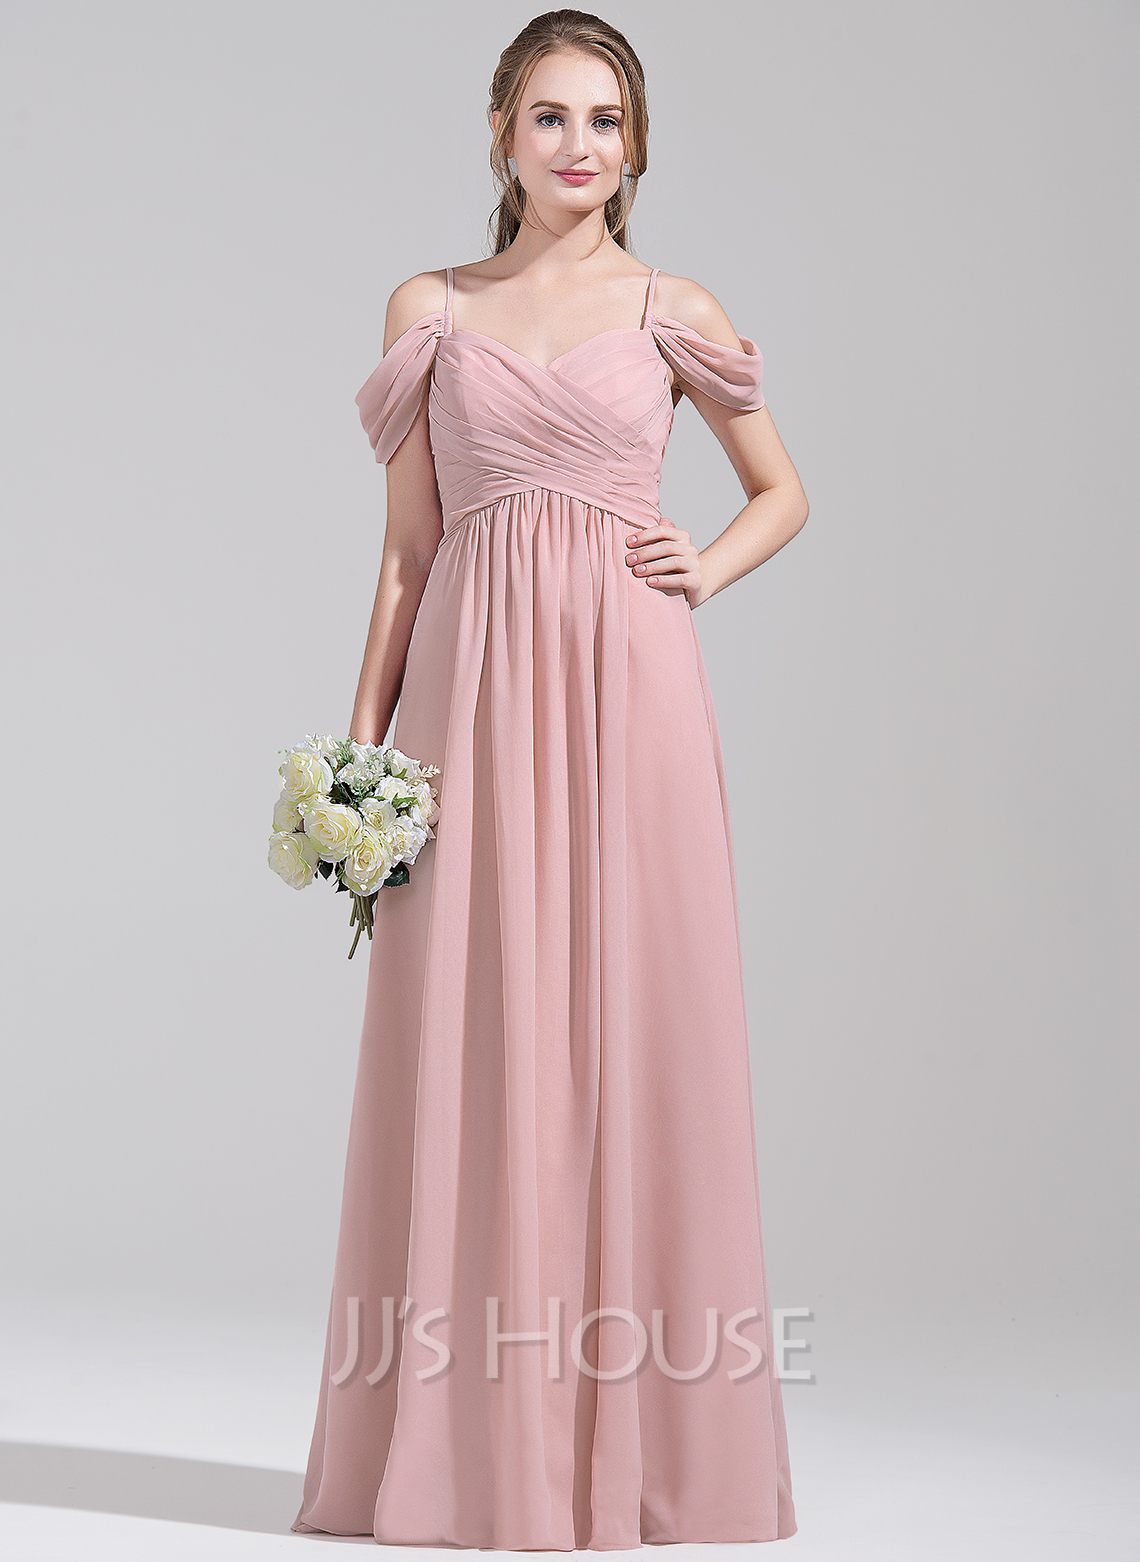 A lineprincess off the shoulder floor length chiffon bridesmaid a lineprincess off the shoulder floor length chiffon bridesmaid dress loading zoom ombrellifo Gallery